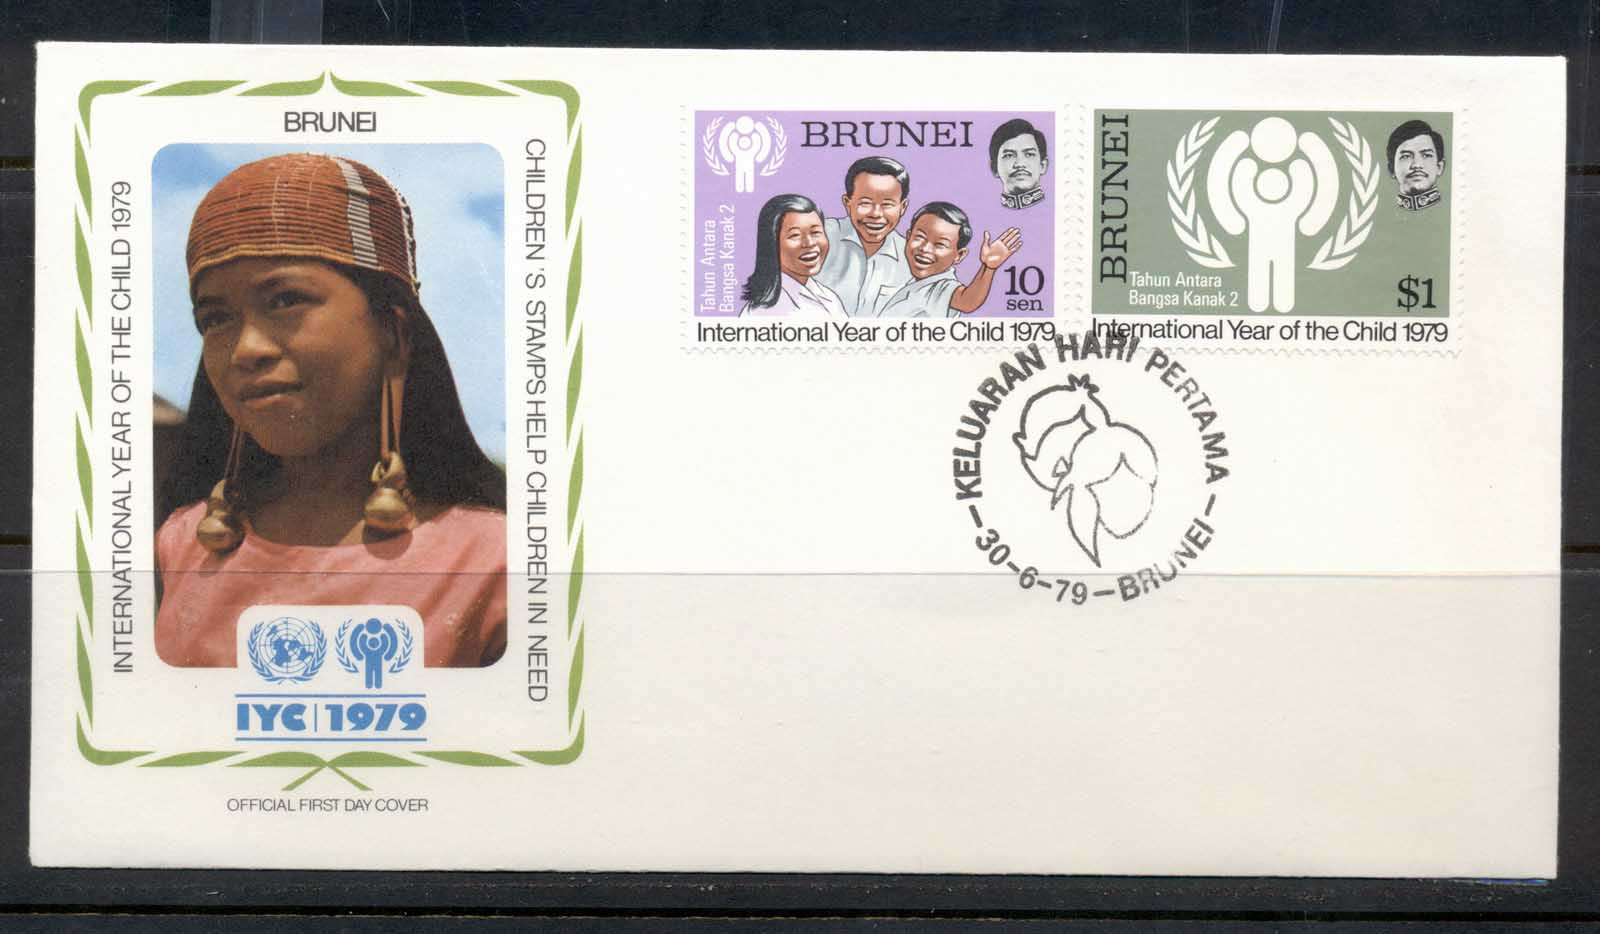 Brunei 1979 IYC International year of the Child FDC